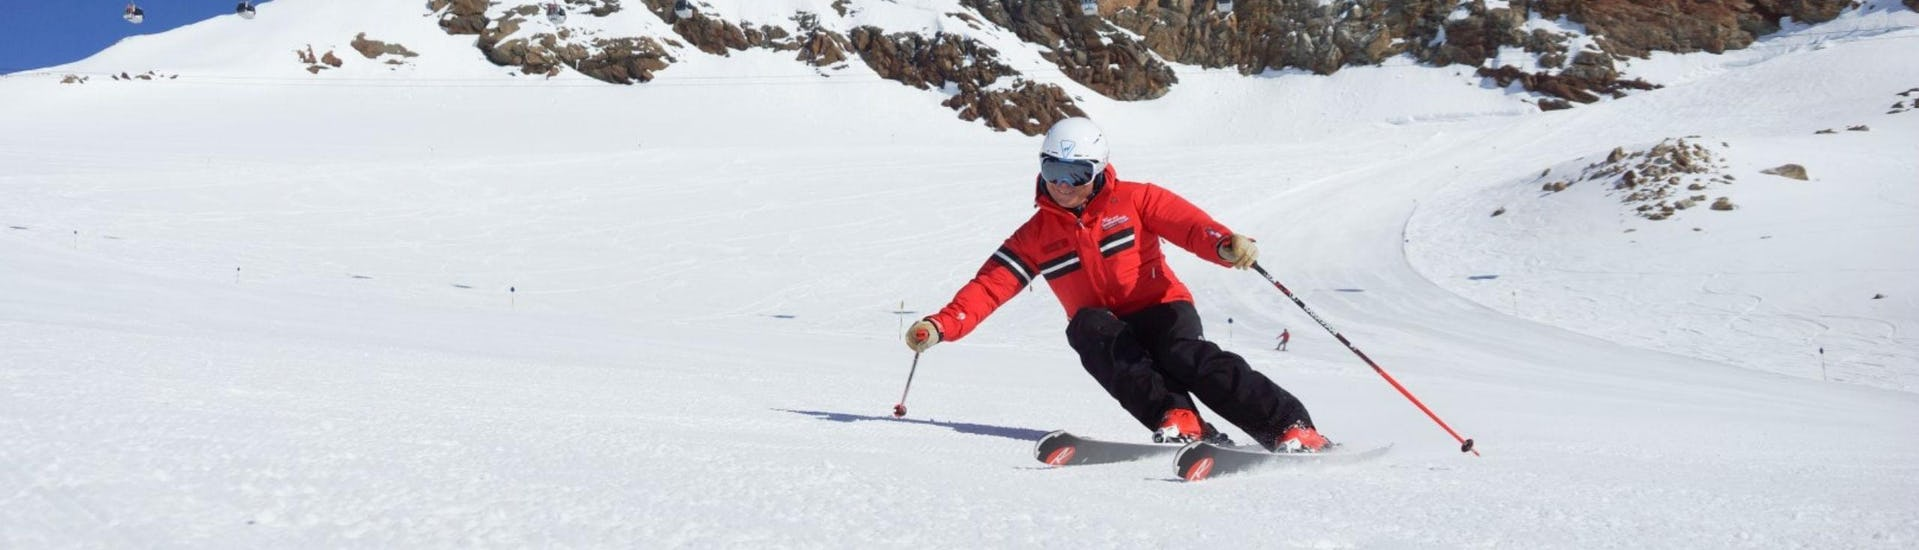 """A ski instructor from the ski school Ski- und Snowboardschule Vacancia is demonstrating the correct skiing technique during one of the Ski Lessons for Adults """"All Inclusive"""" - All Levels."""